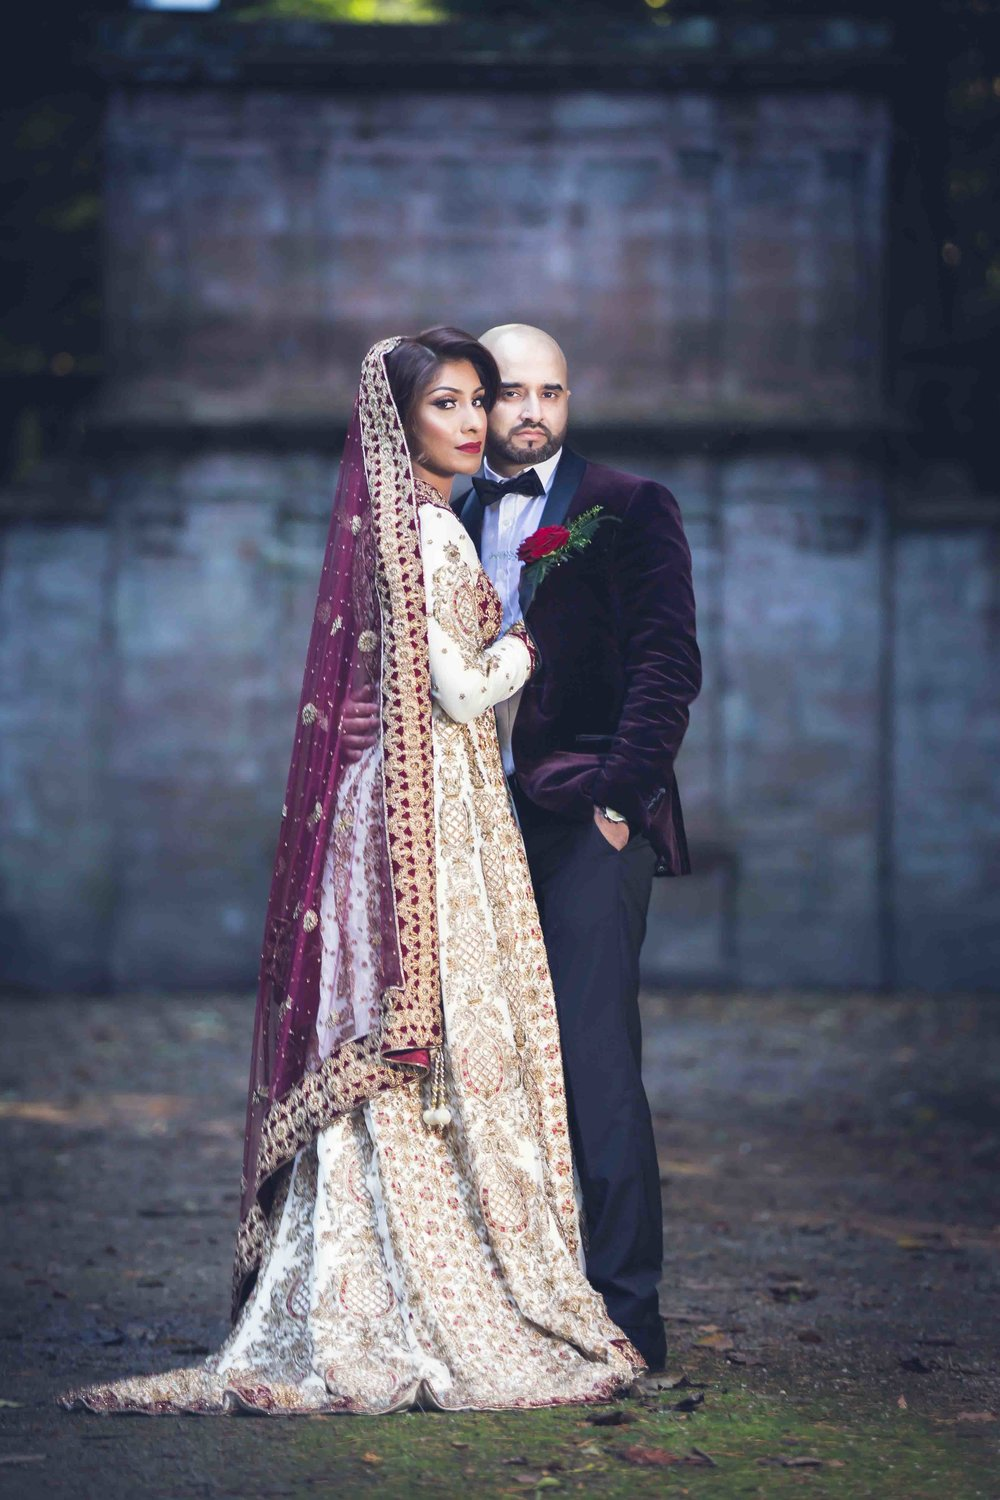 Asian Wedding Photographer Opu Sultan Photography Lyme Park Scotland Edinburgh Glasgow London Manchester Liverpool Birmingham Wedding Photos prewed shoot Azman & Saira Blog-94.jpg